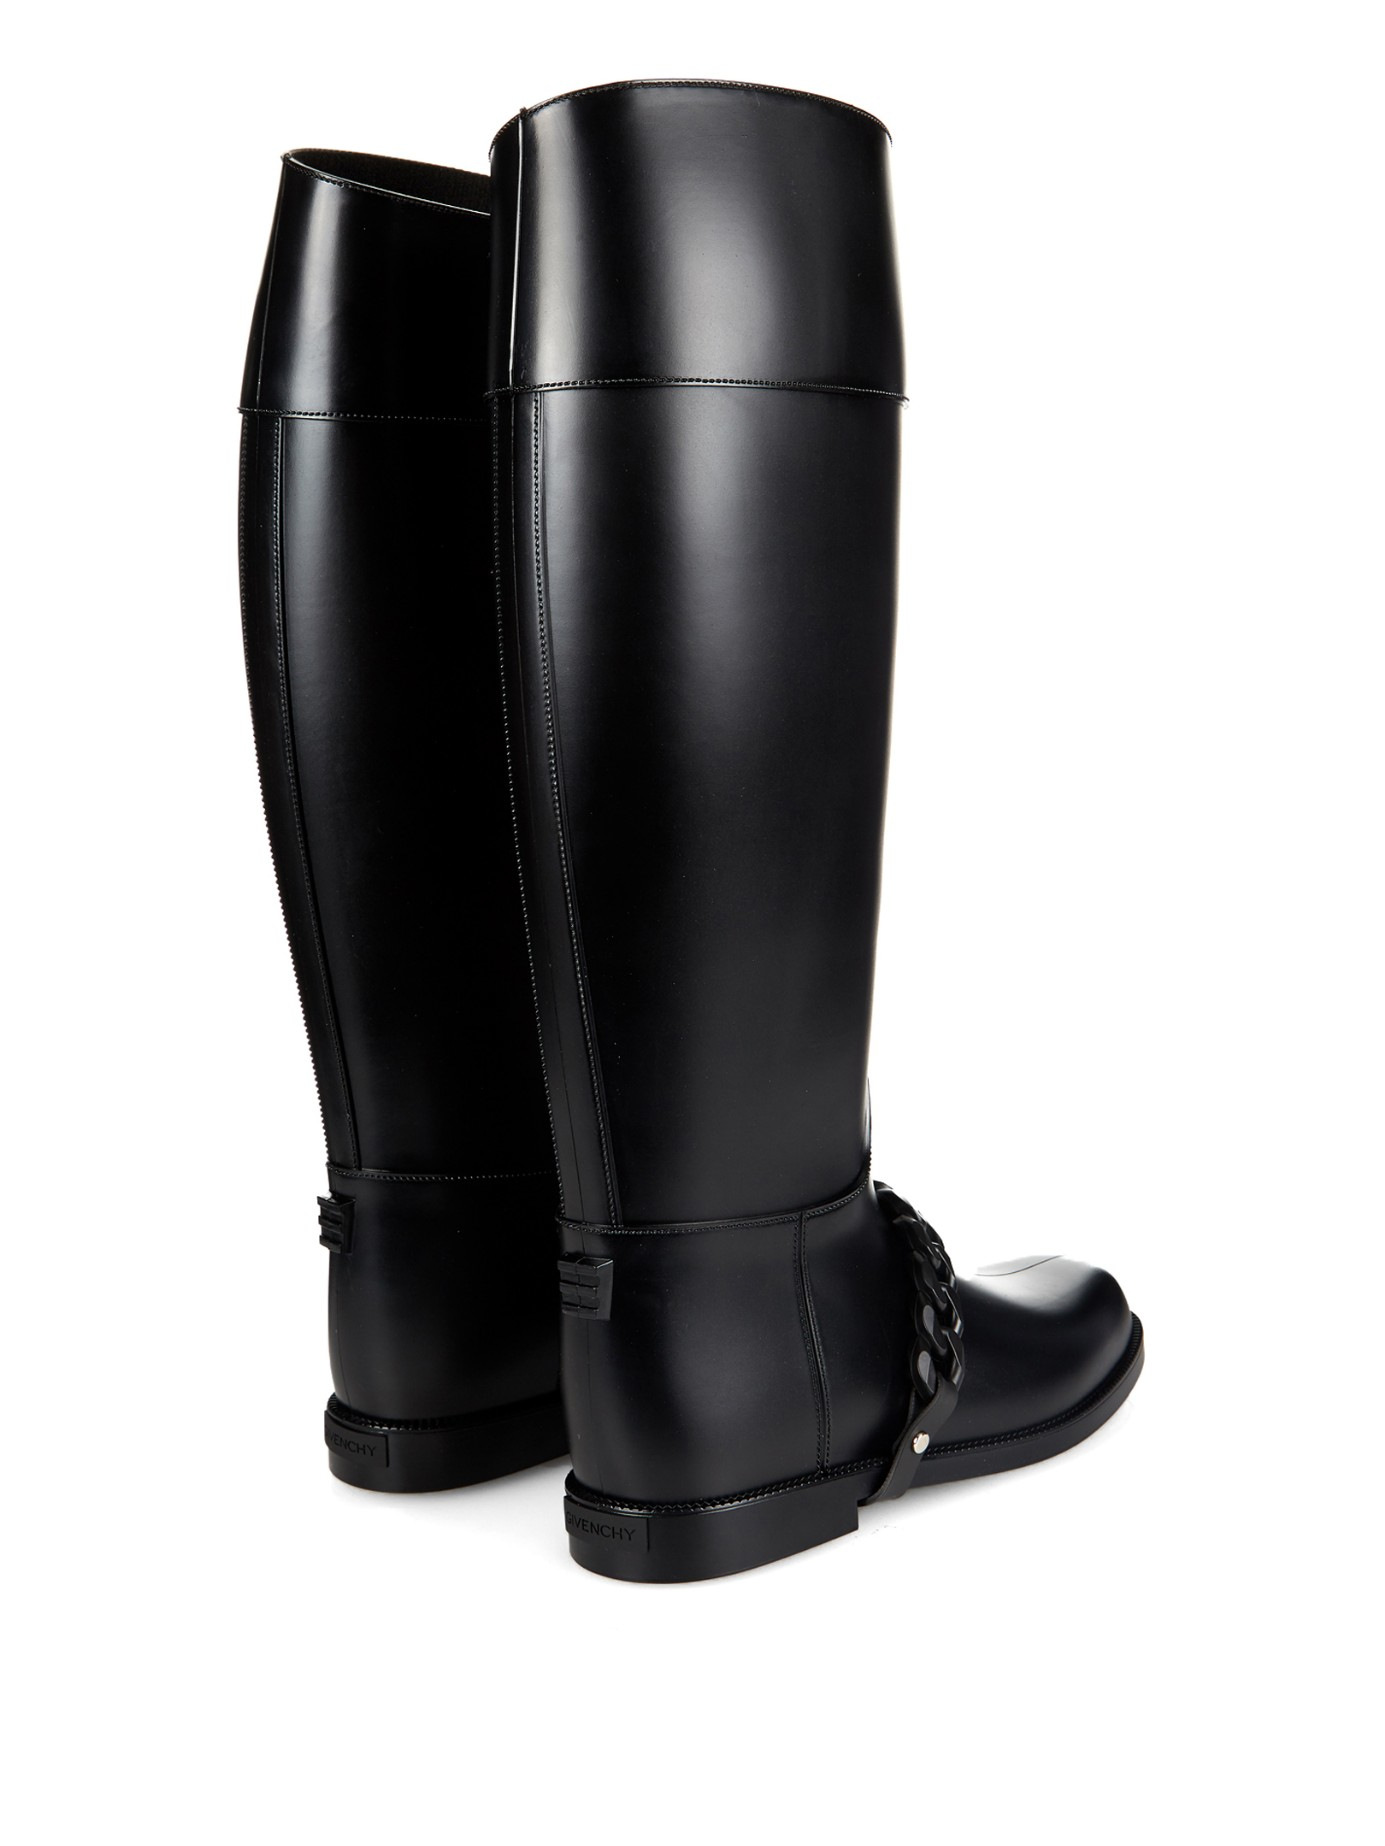 Givenchy Eva-Chain Rubber Rain Boots in Black | Lyst